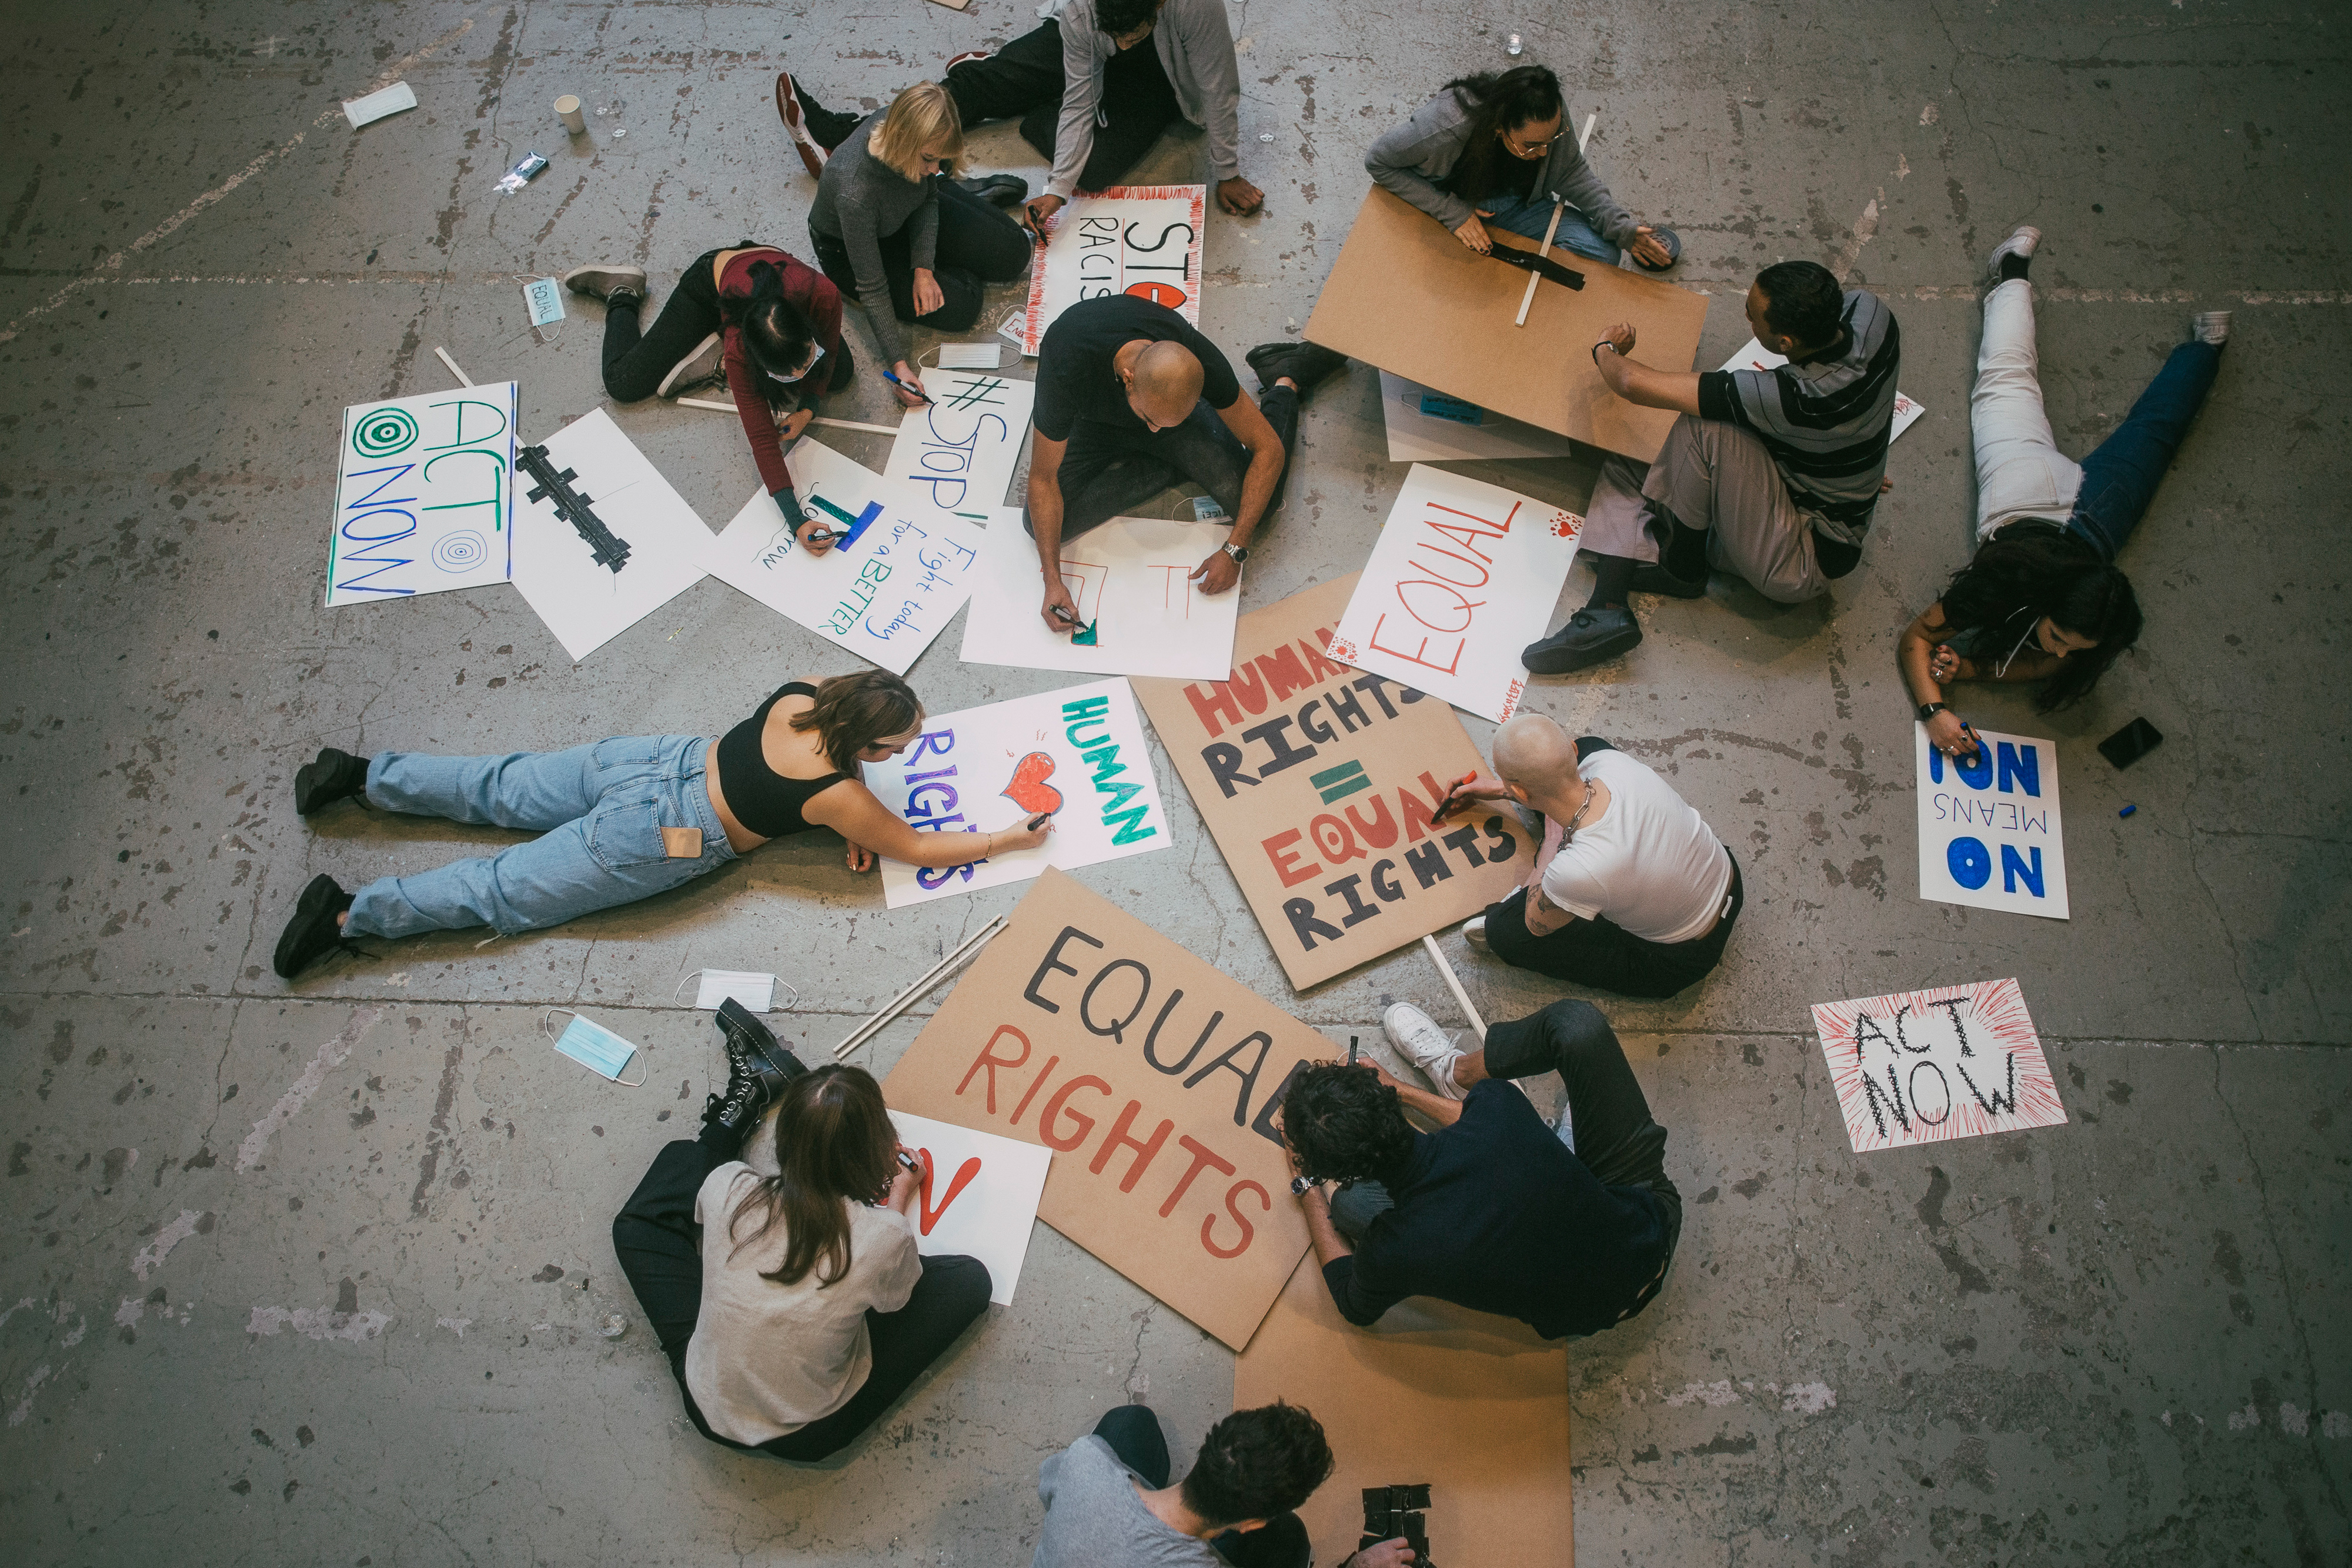 Young people make signs for equal rights and human rights.